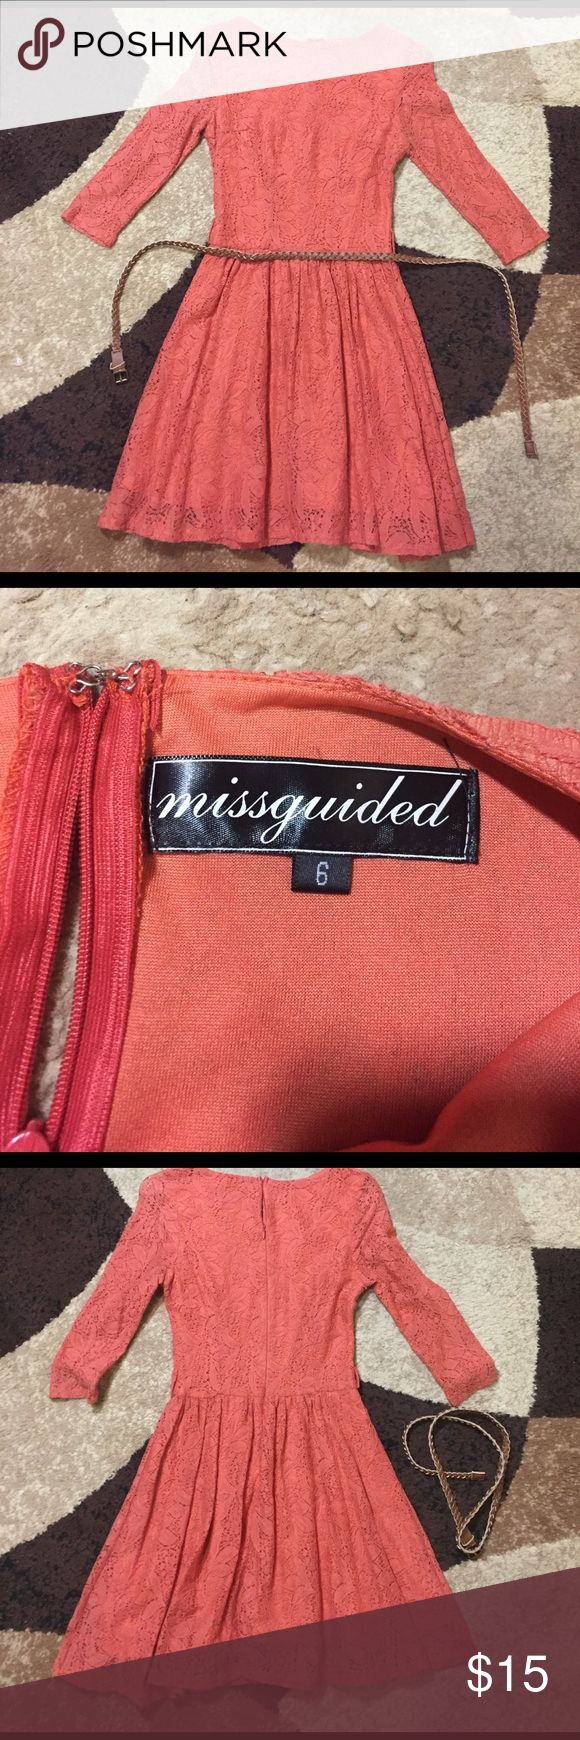 MisGuided Dress Orange Lace Dress from Misguided. Perfect for spring. Light and flirty dress. This dress has no elastic so it doesn't stretch. This dress falls above the knee so if you don't like short dresses this isn't for you. Worn once. In perfect condition. The zipper is a little sticky and that's the way I bought it but it still works Misguided Dresses Mini